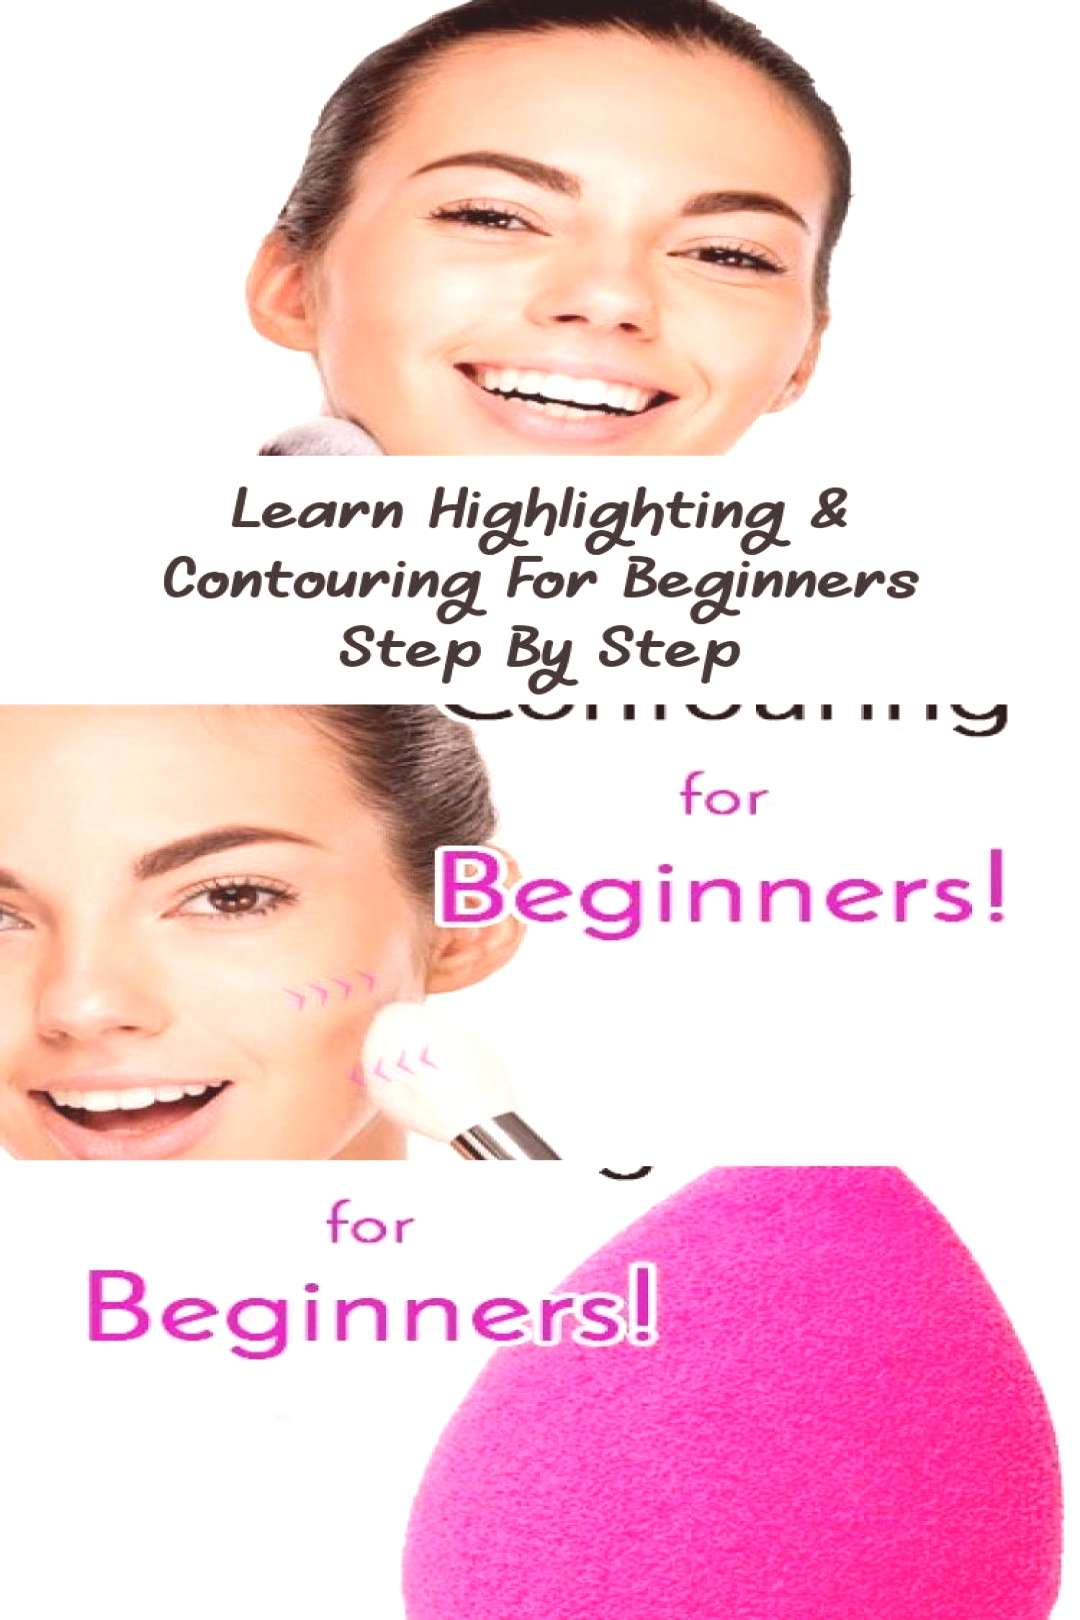 Learn step-by-step highlighting and contouring for beginners ... - Learn step by step how to highl